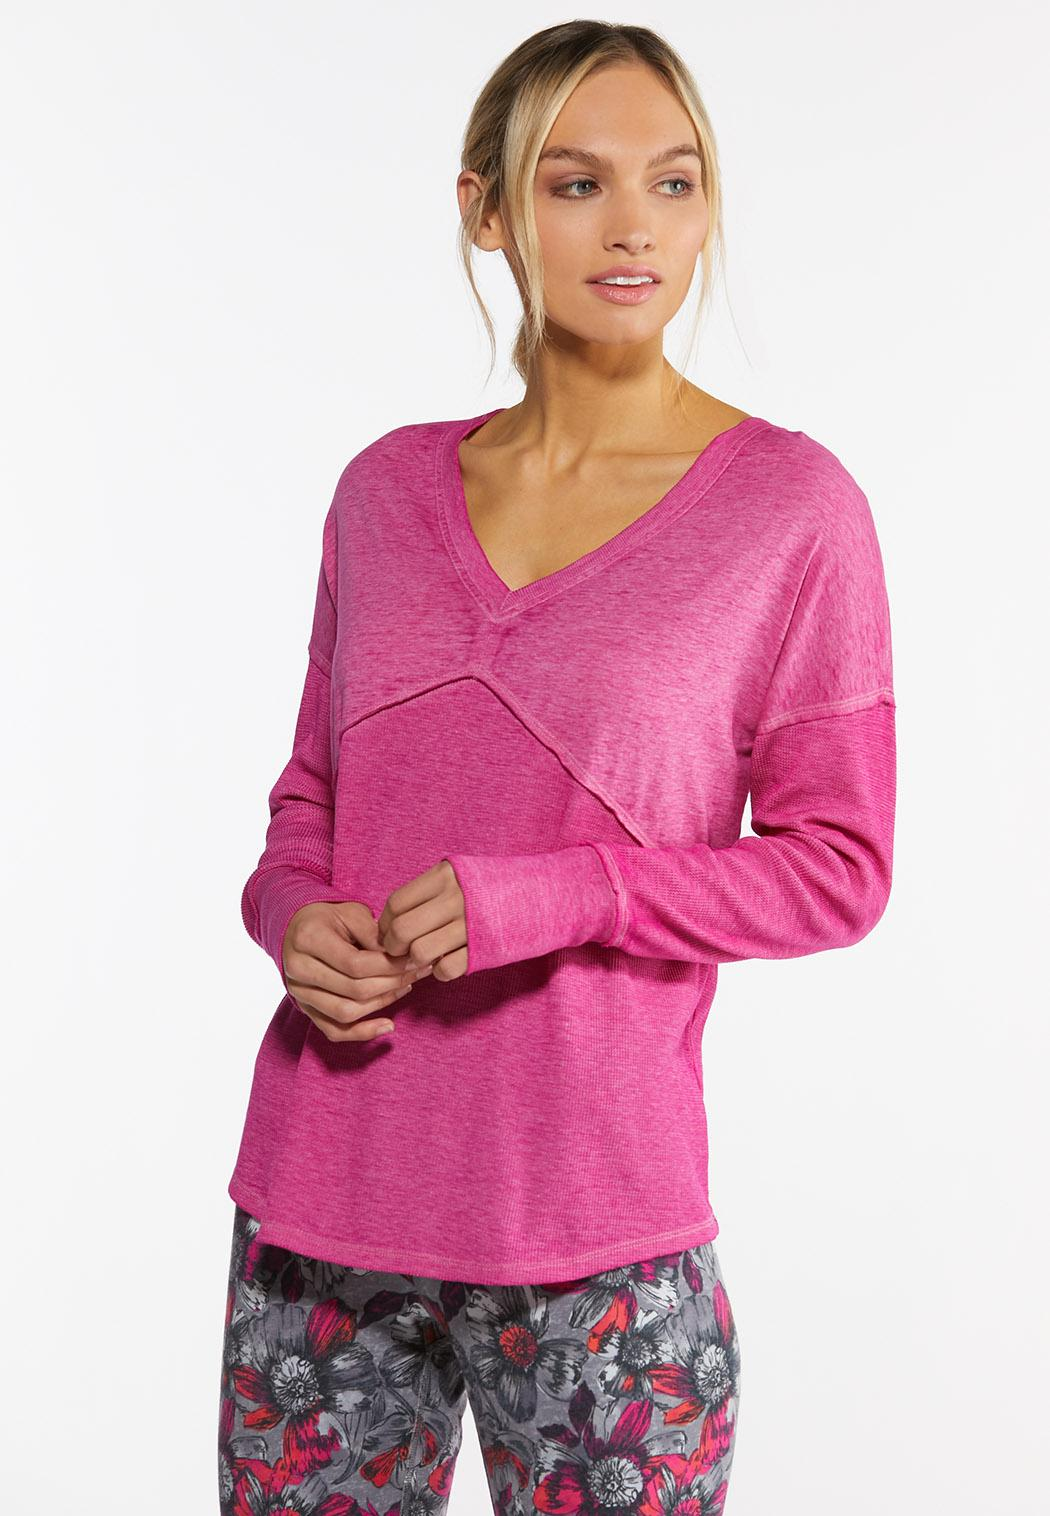 Plus Size Live Well Active Cross Back Top